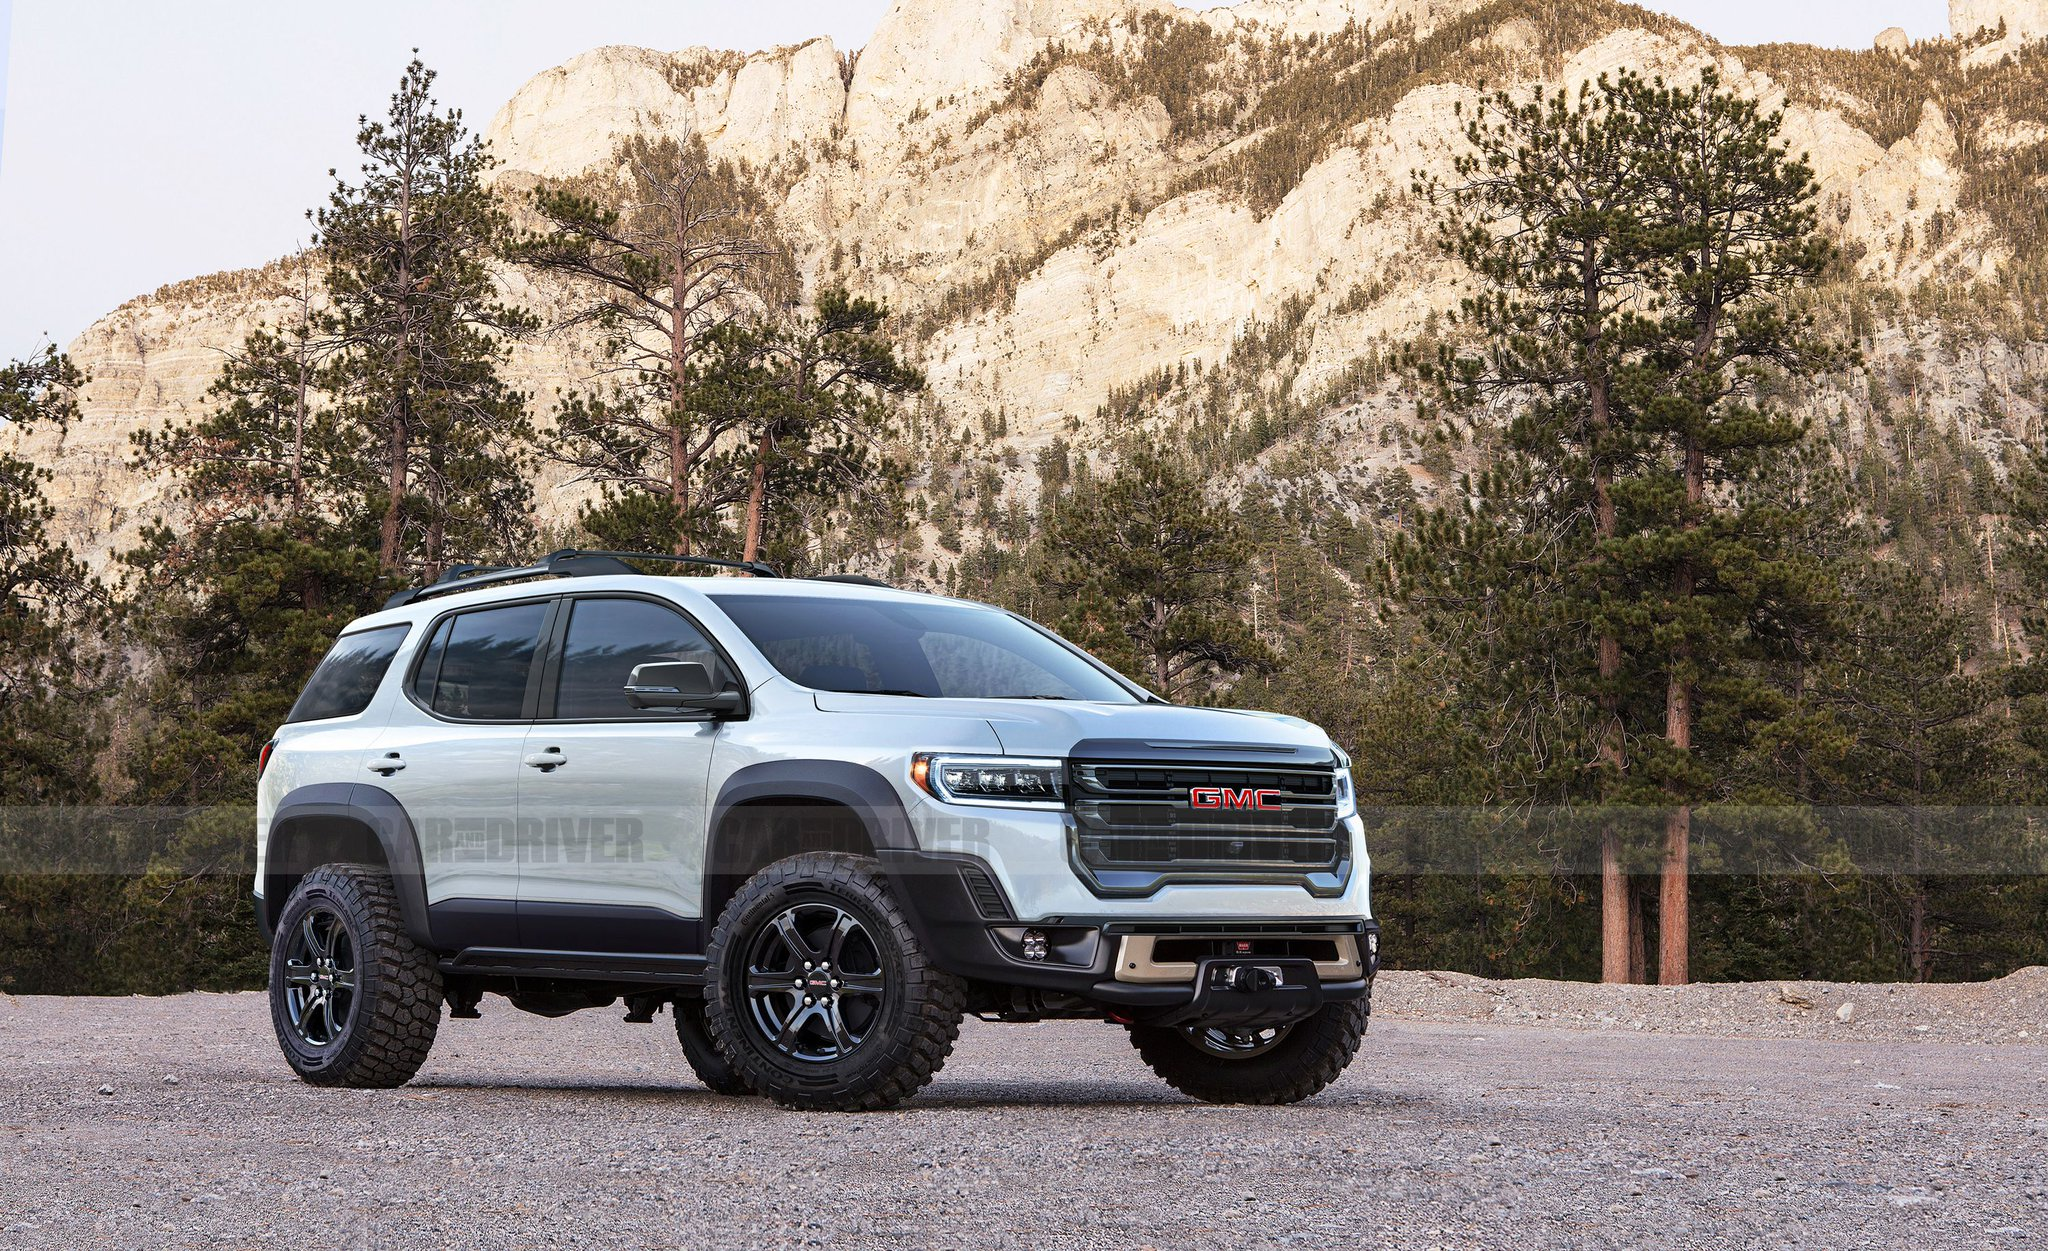 Car And Driver On Twitter The 2022 Gmc Jimmy Could Be Gm S Answer To The Jeep Wrangler Https T Co Puepbjw7fo